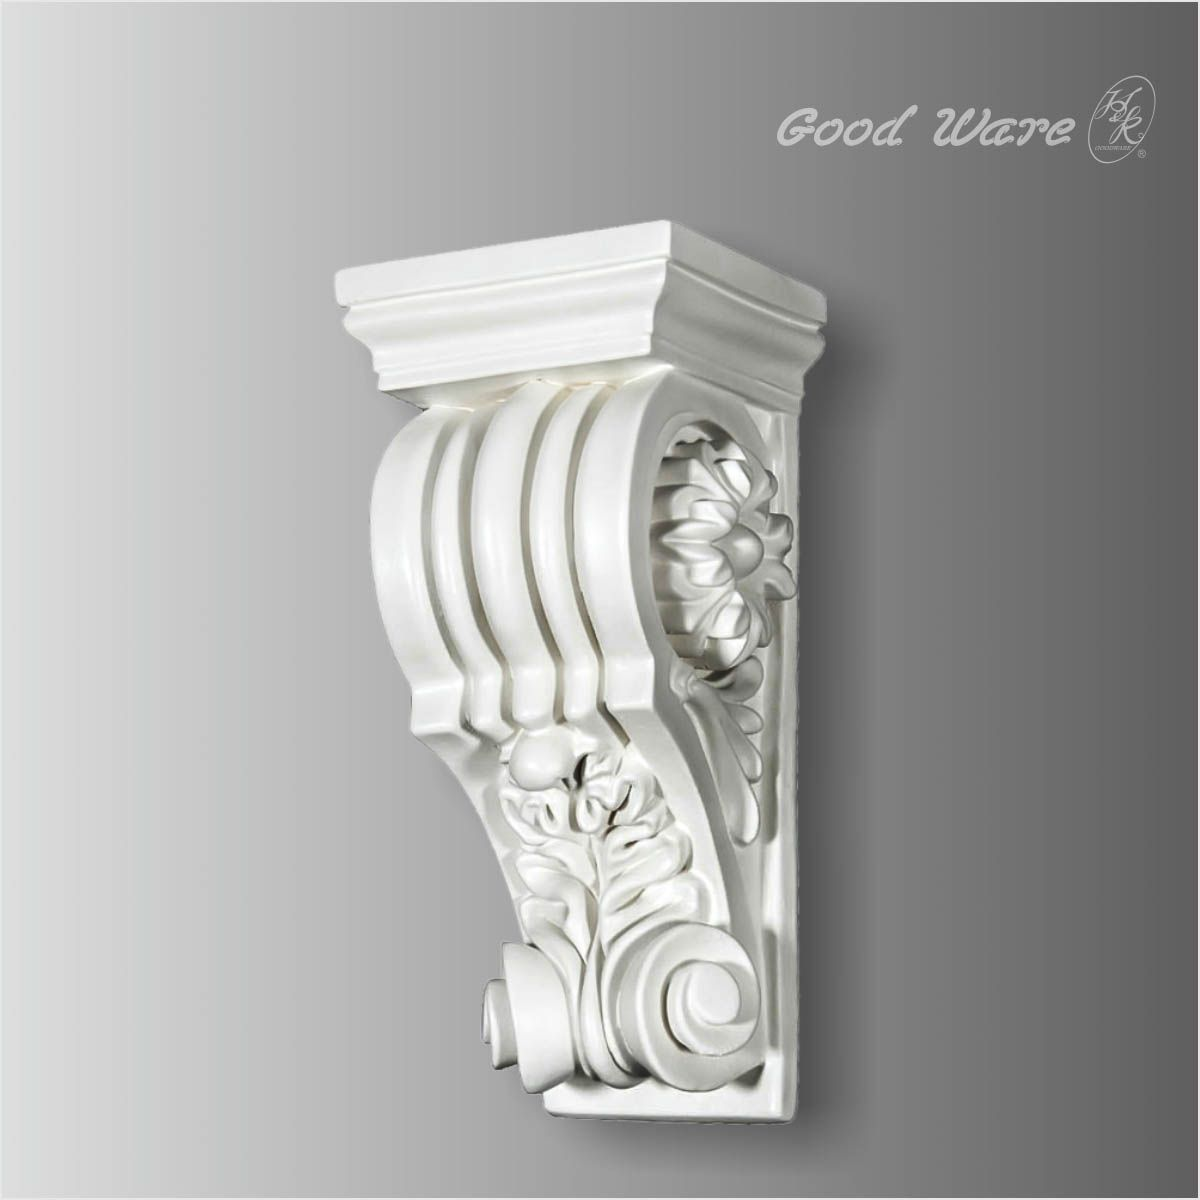 american decor image home scotch corbels of to how decorative install